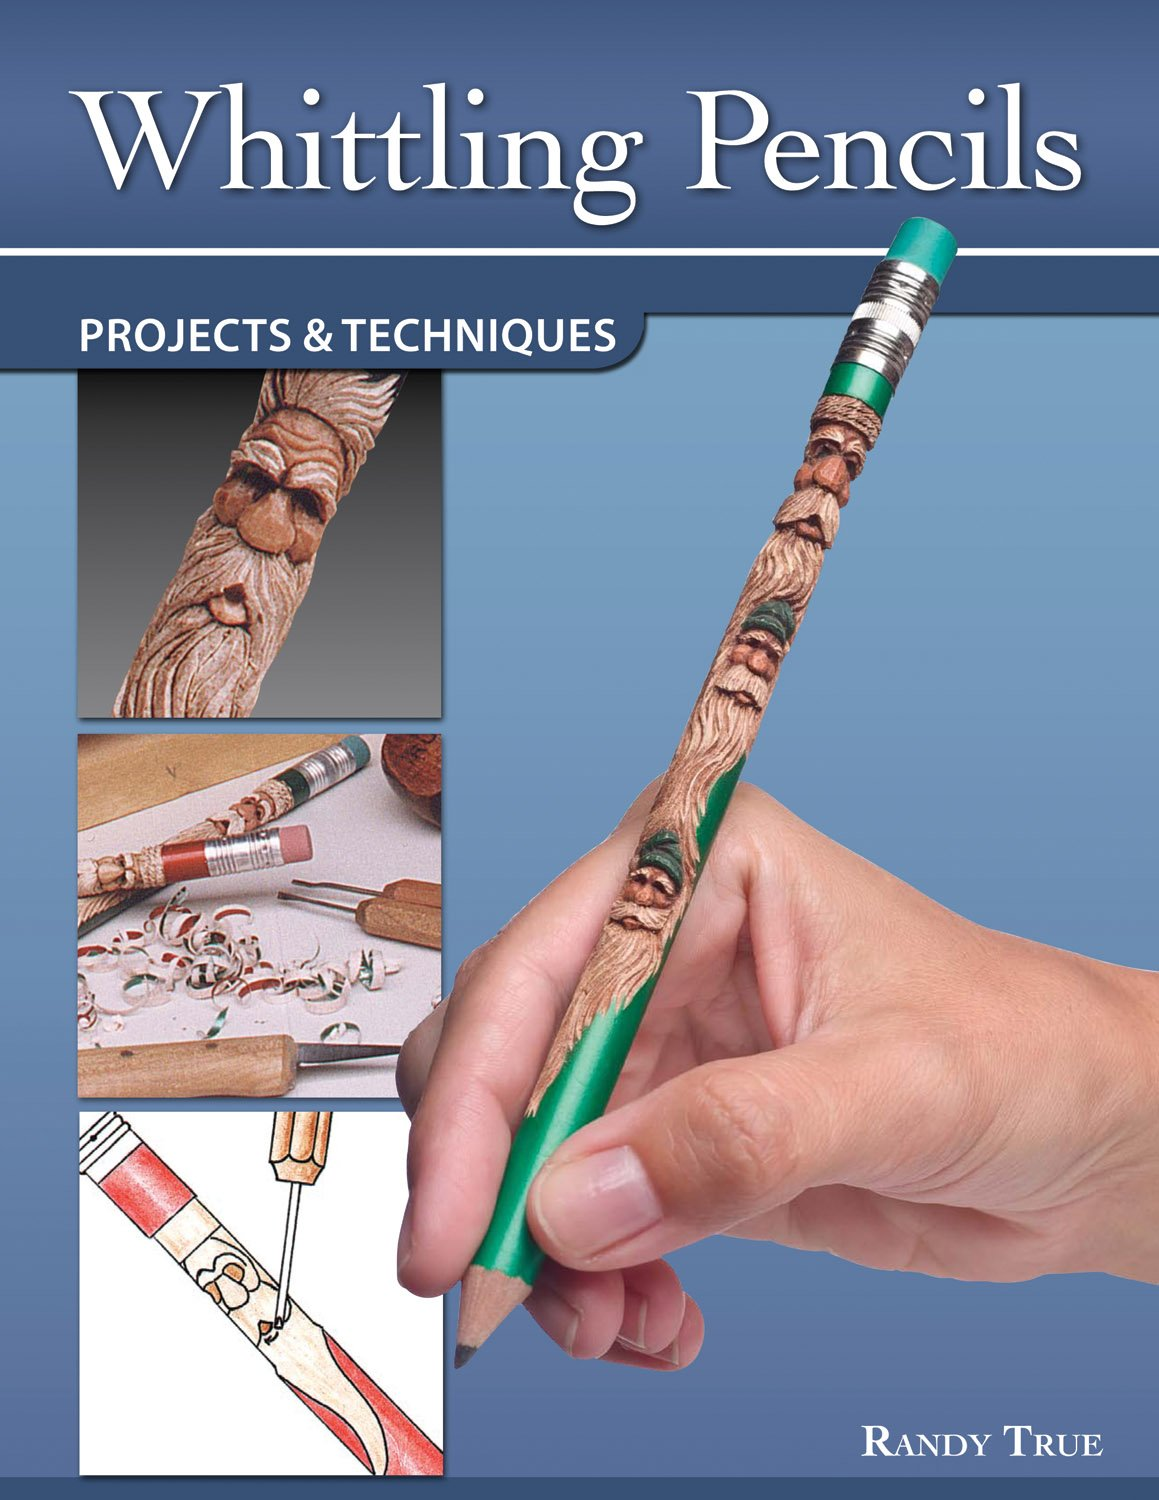 Whittling Pencils: Projects and Techniques (Fox Chapel Publishing) Learn the Slender Craft of Pencil Carving with Step-by-Step Instructions for a Santa, Wood Spirit, Leprechaun, Uncle Sam